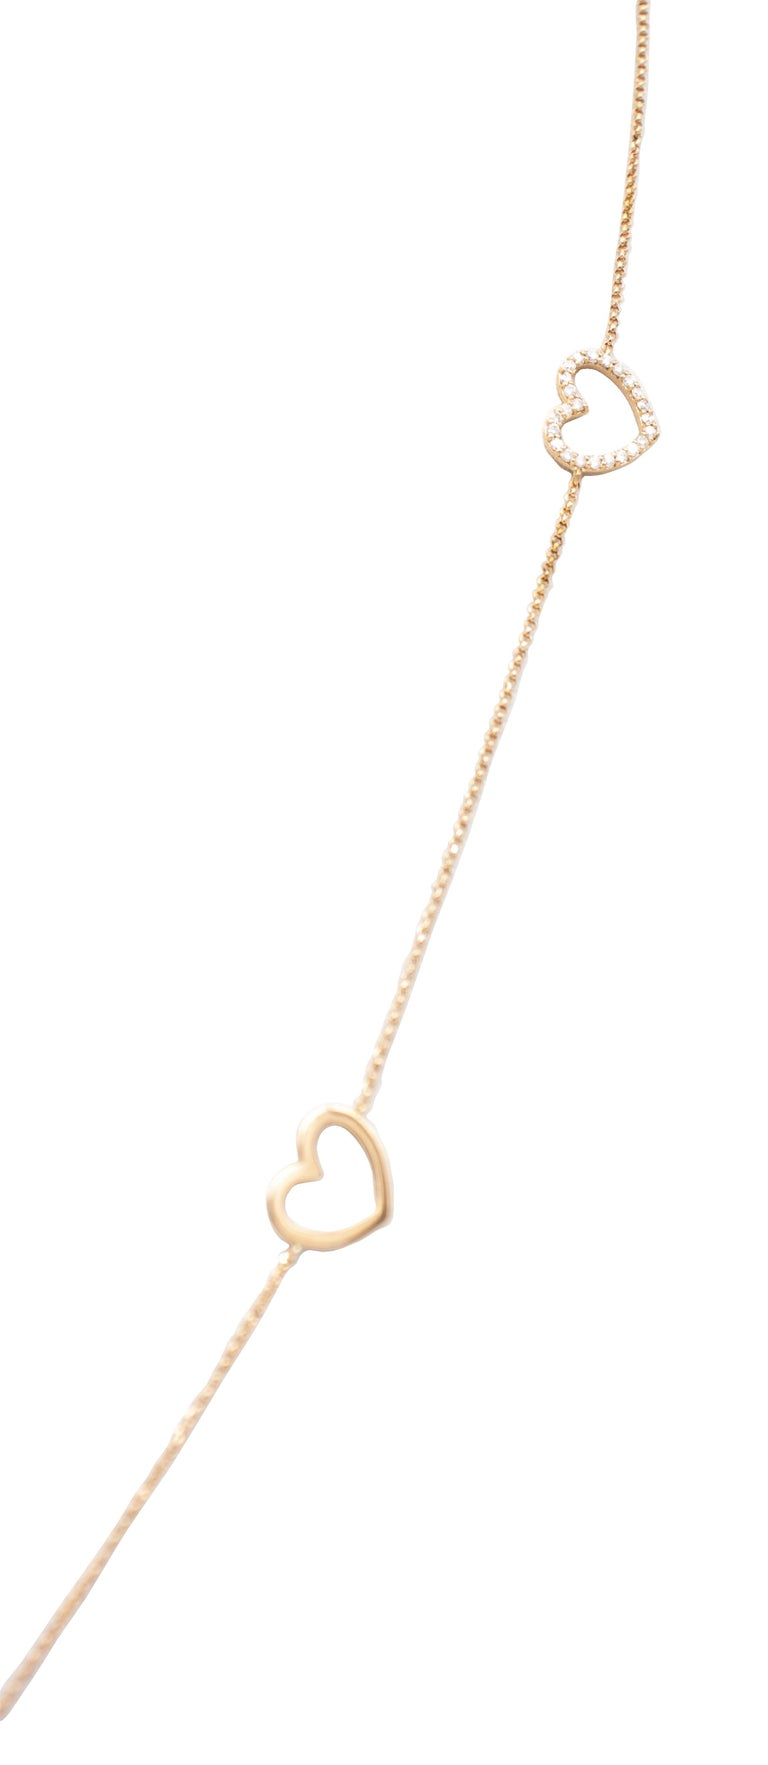 Modern White Diamonds, 18K Rose Gold, Heart Theme, Chain Necklace For Sale